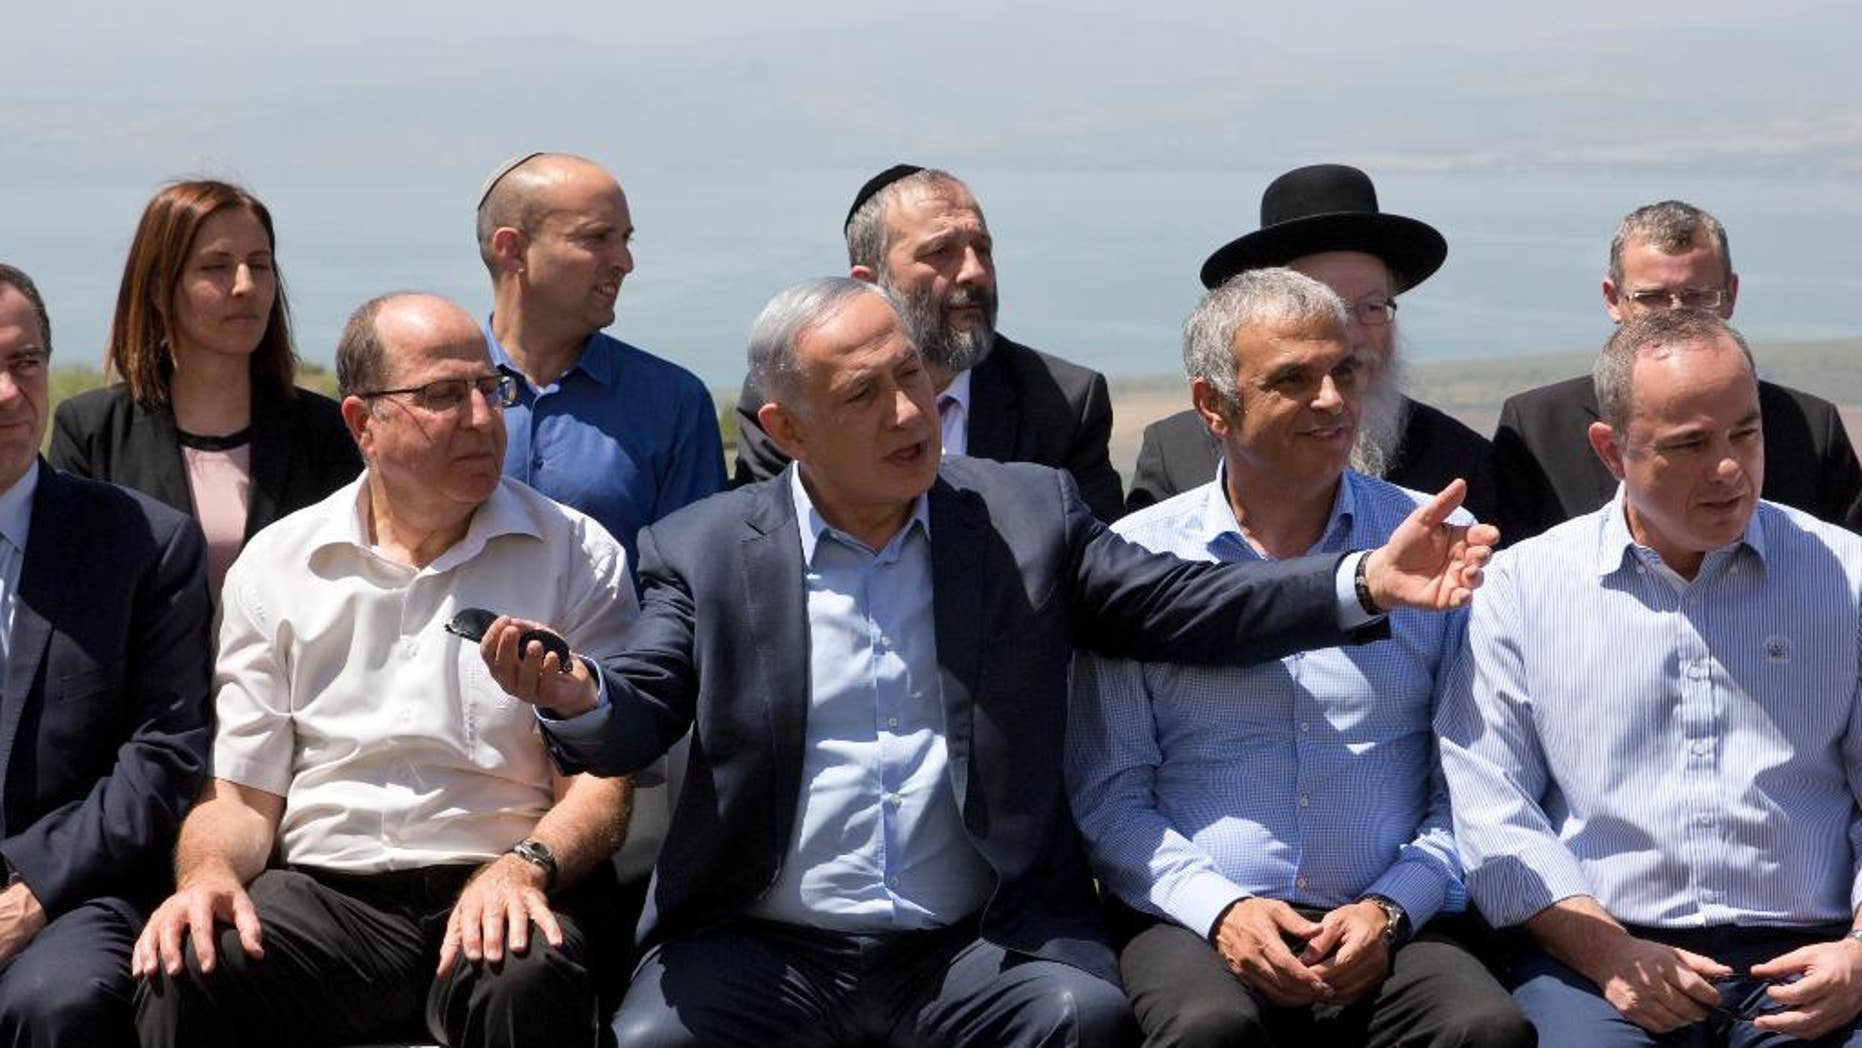 File - In this Sunday, April 17, 2016 file photo, Israeli Prime Minister Benjamin Netanyahu, center, poses with ministers prior to the weekly cabinet meeting in the Israeli controlled Golan Heights. Netanyahu has sparked a new diplomatic brushfire by declaring that the Golan Heights, seized from Syria in the 1967 war, is and should remain sovereign Israeli territory. But following some tough international criticism, Israeli officials have begun to backtrack, saying that a 1981 decision to apply Israeli law to the strategic plateau fell short of annexation and implying that Netanyahu misspoke. (AP Photo/Sebastian Scheiner, File)